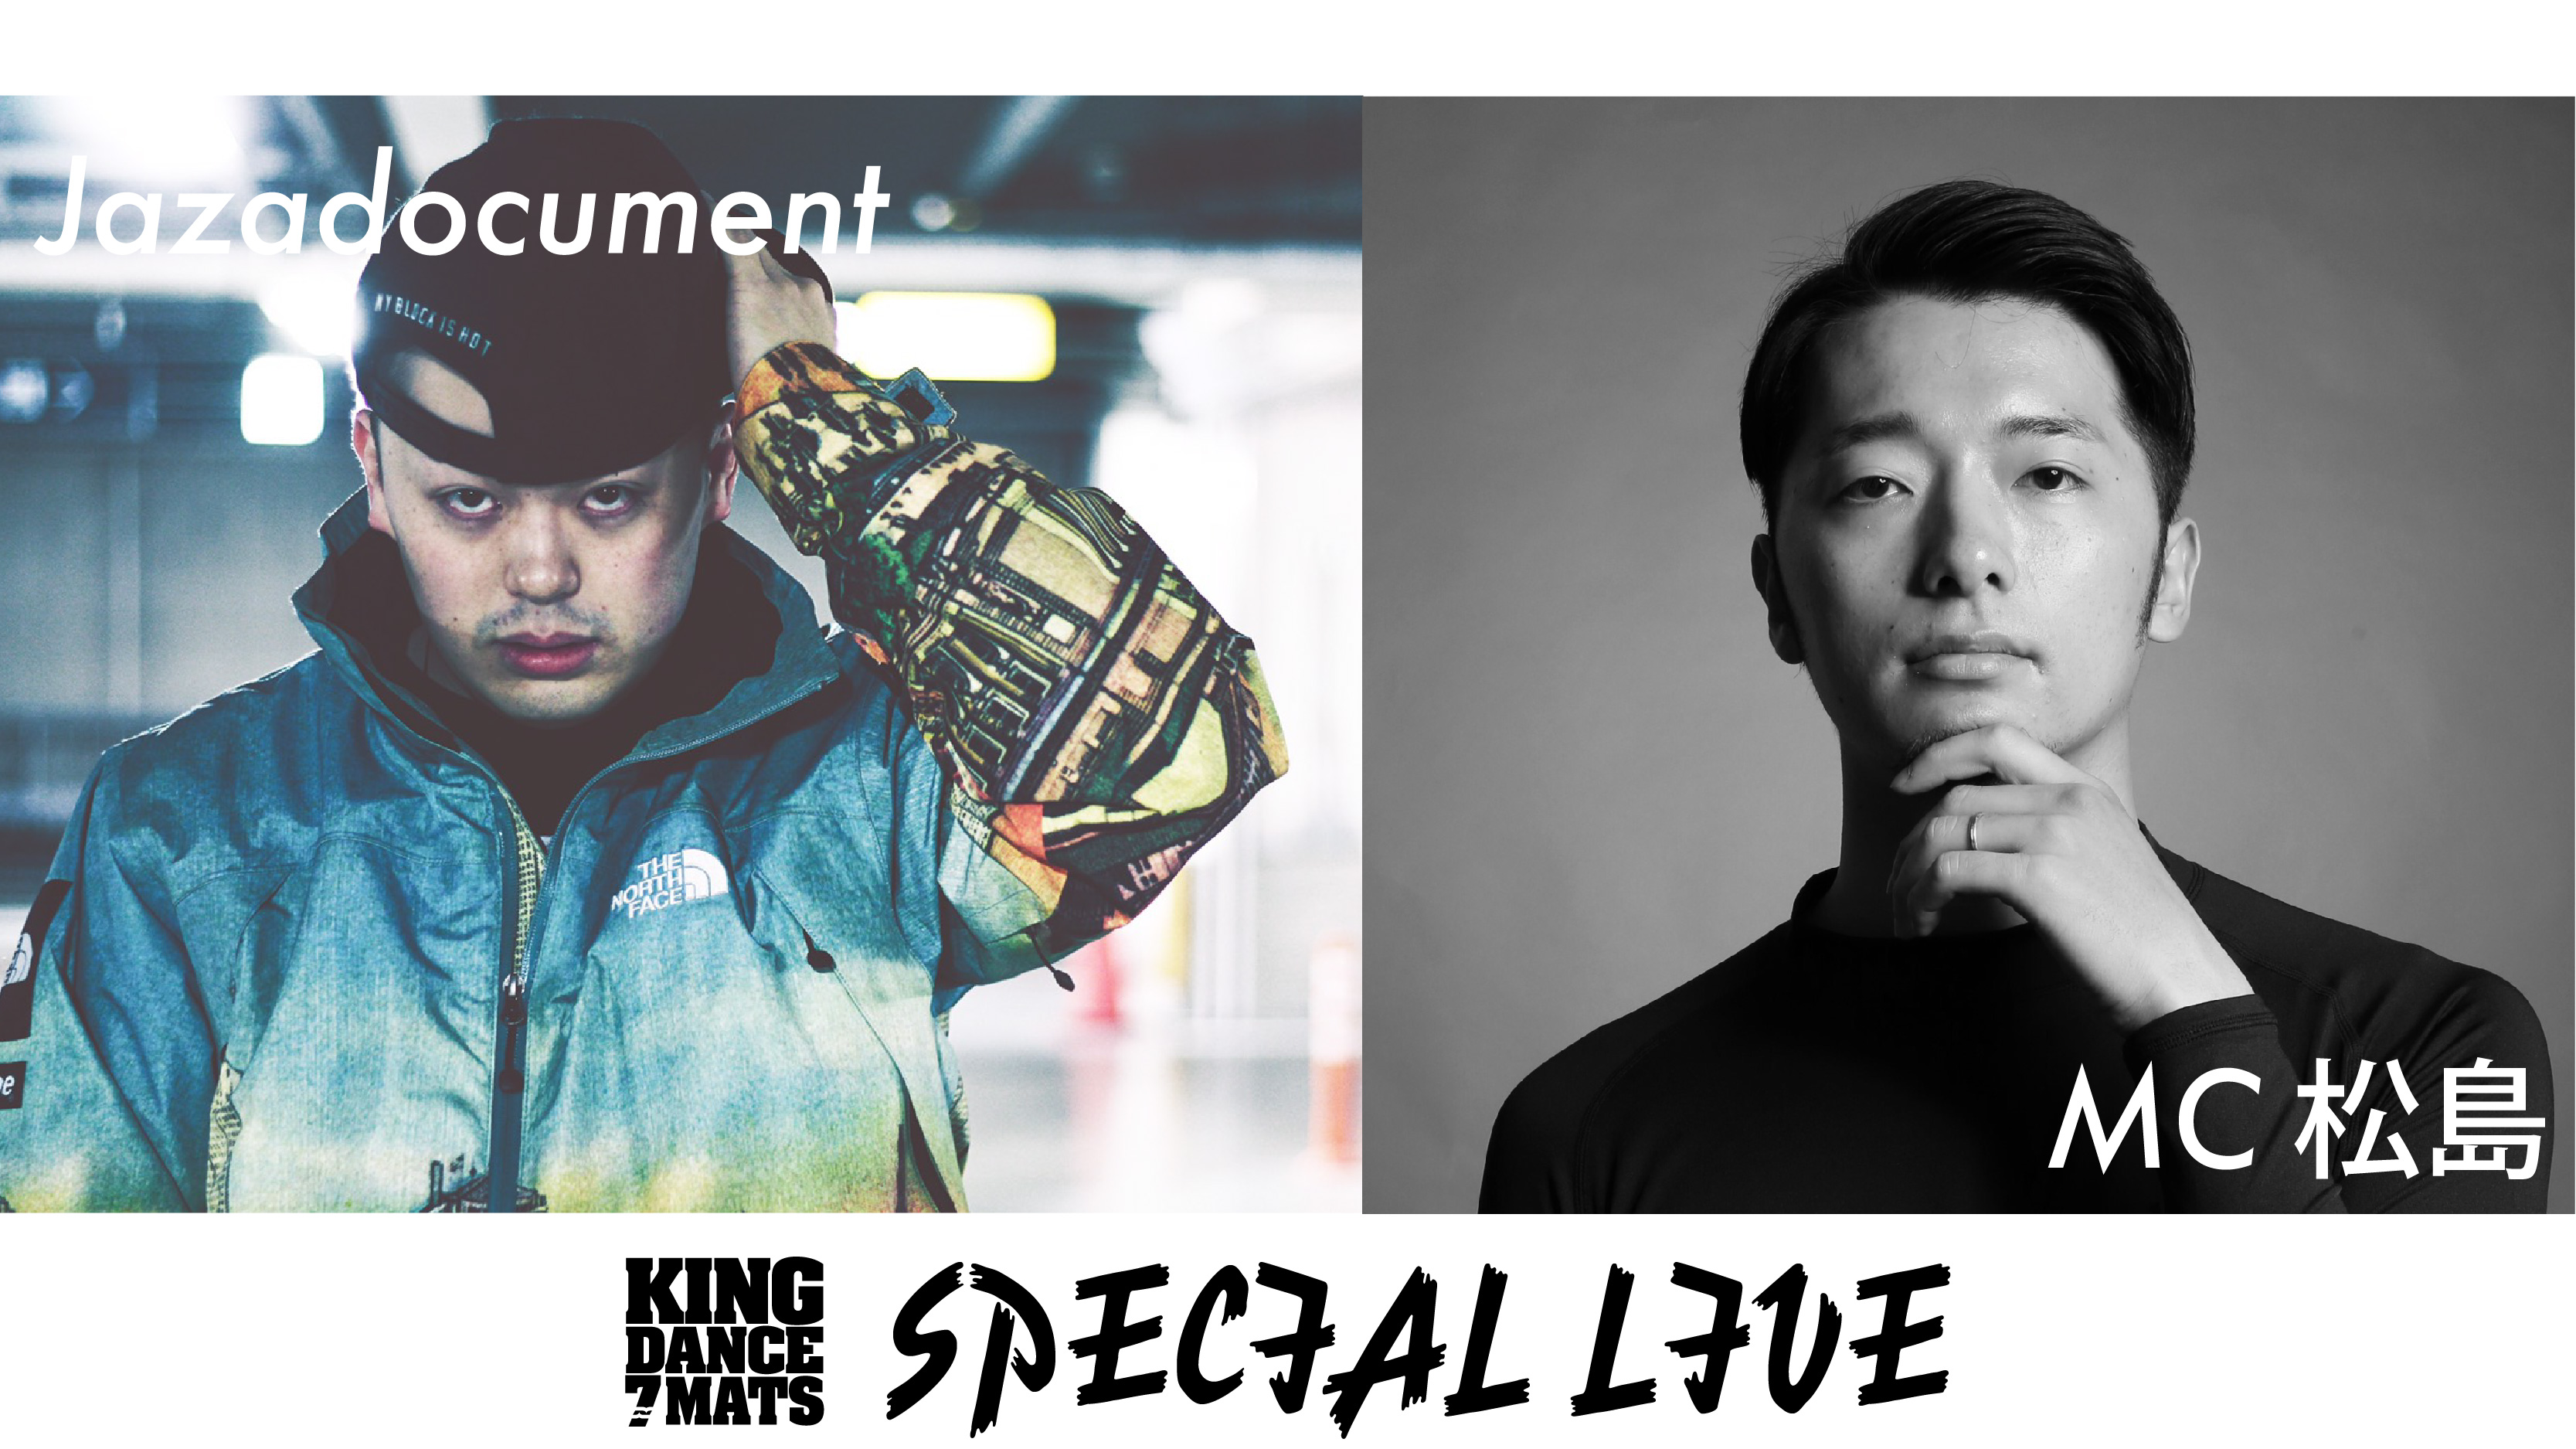 MC松島&Jazadocument SP LIVEがKDM7で決定!!